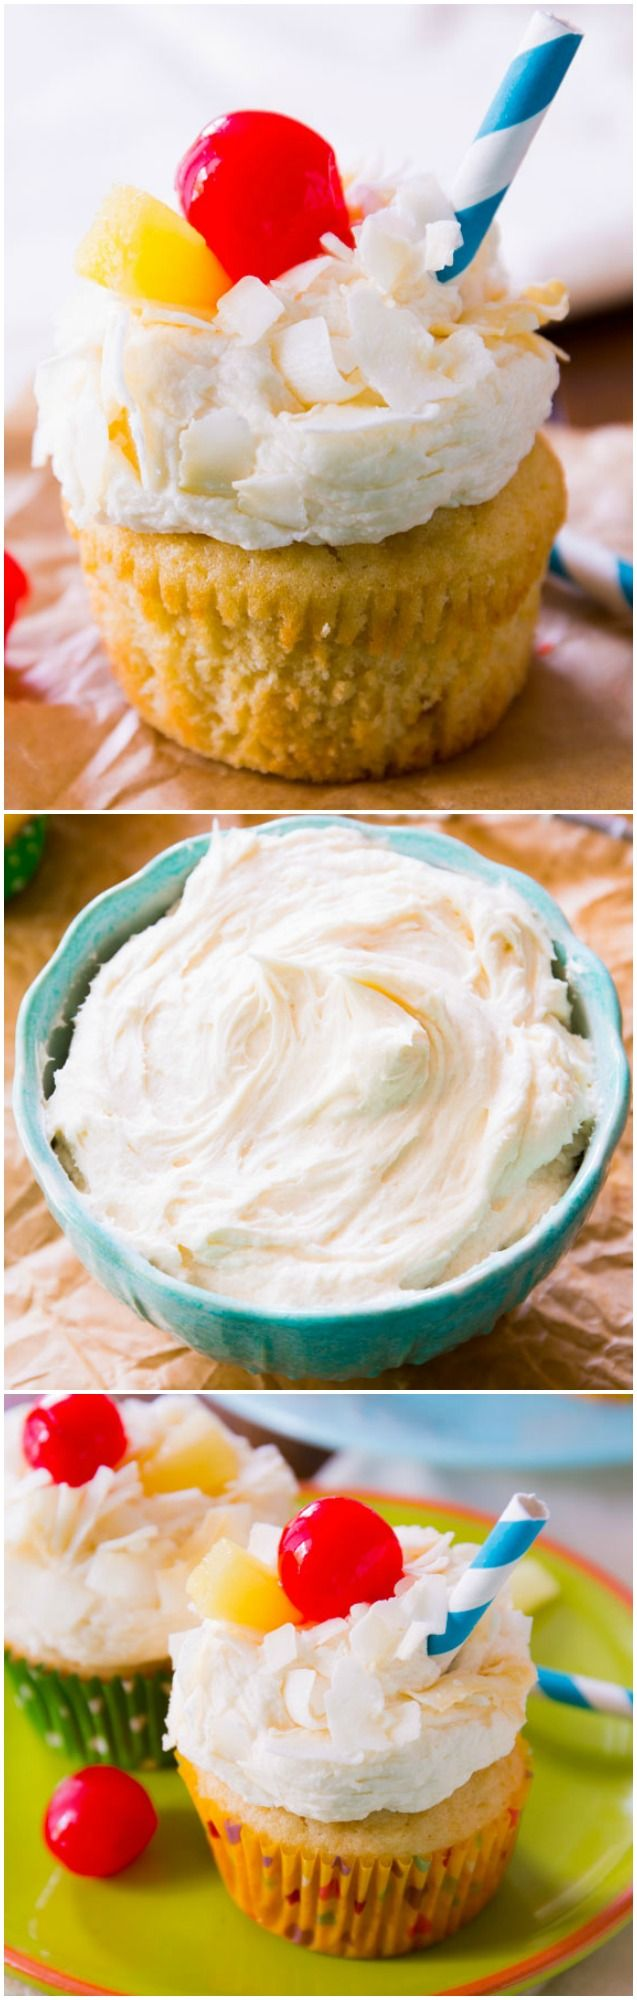 Extra moist pineapple coconut cupcakes topped with coconut frosting. One of the best cupcakes I've ever made!